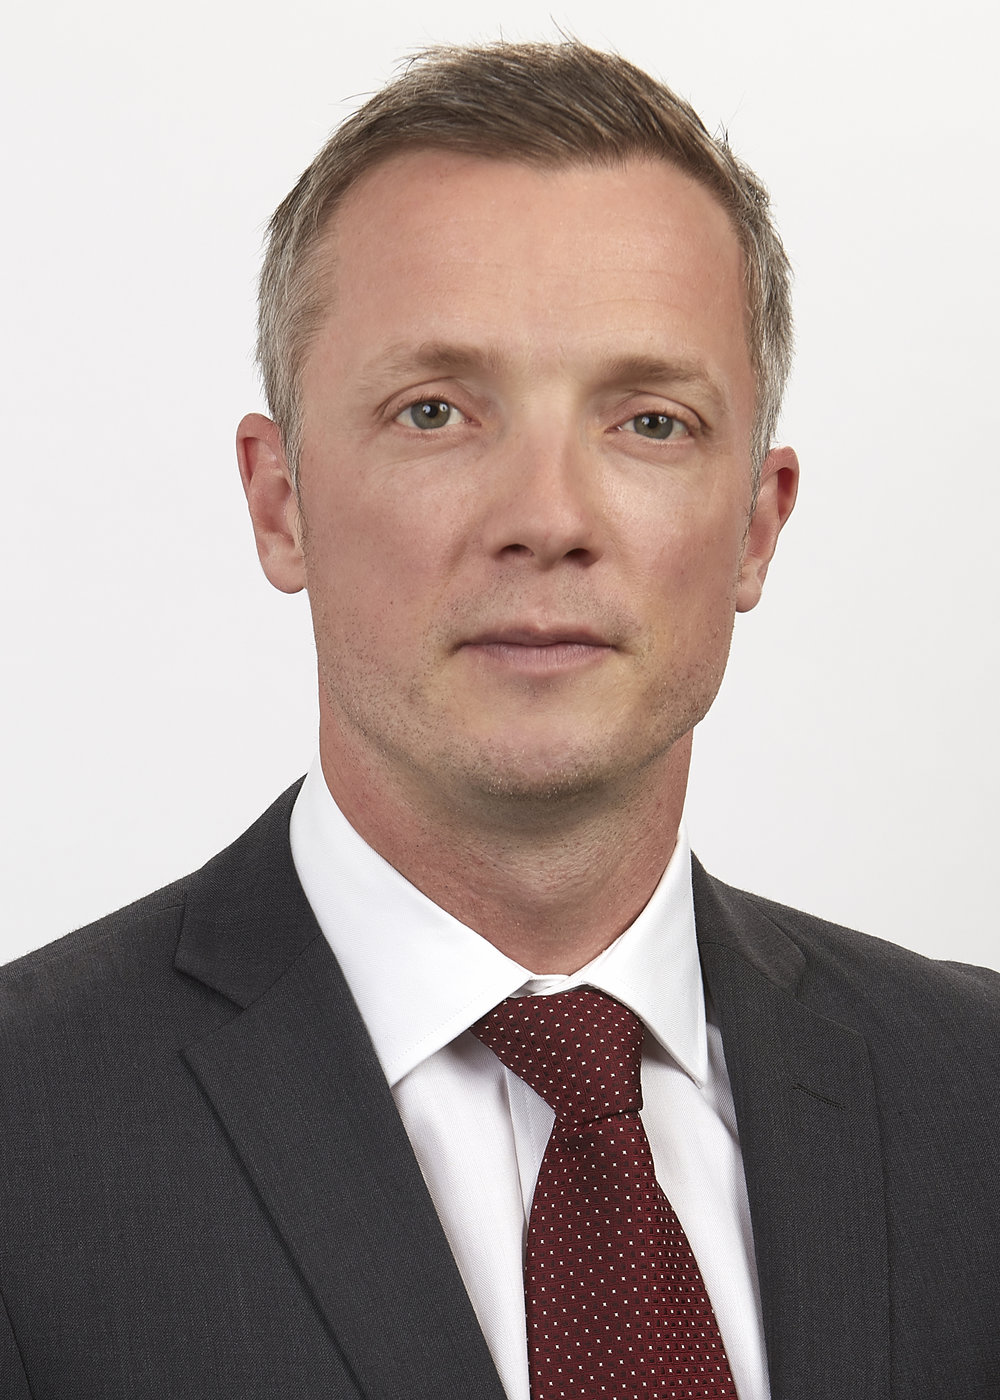 Mans Carlsson-Sweeny - Head of ESG Research, Ausbil